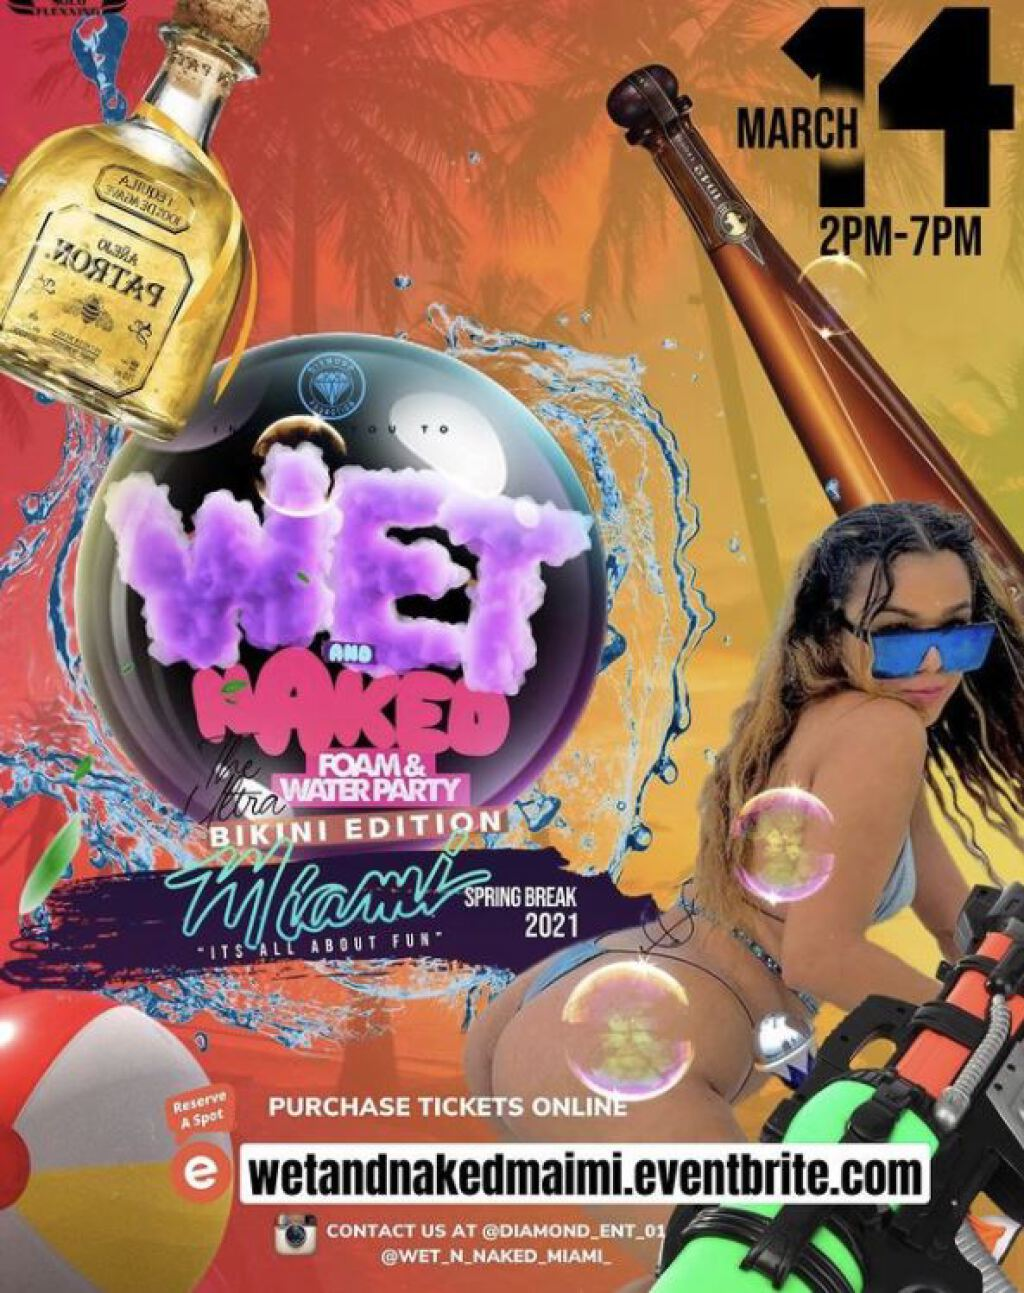 Wet & Naked Water & Foam Party flyer or graphic.